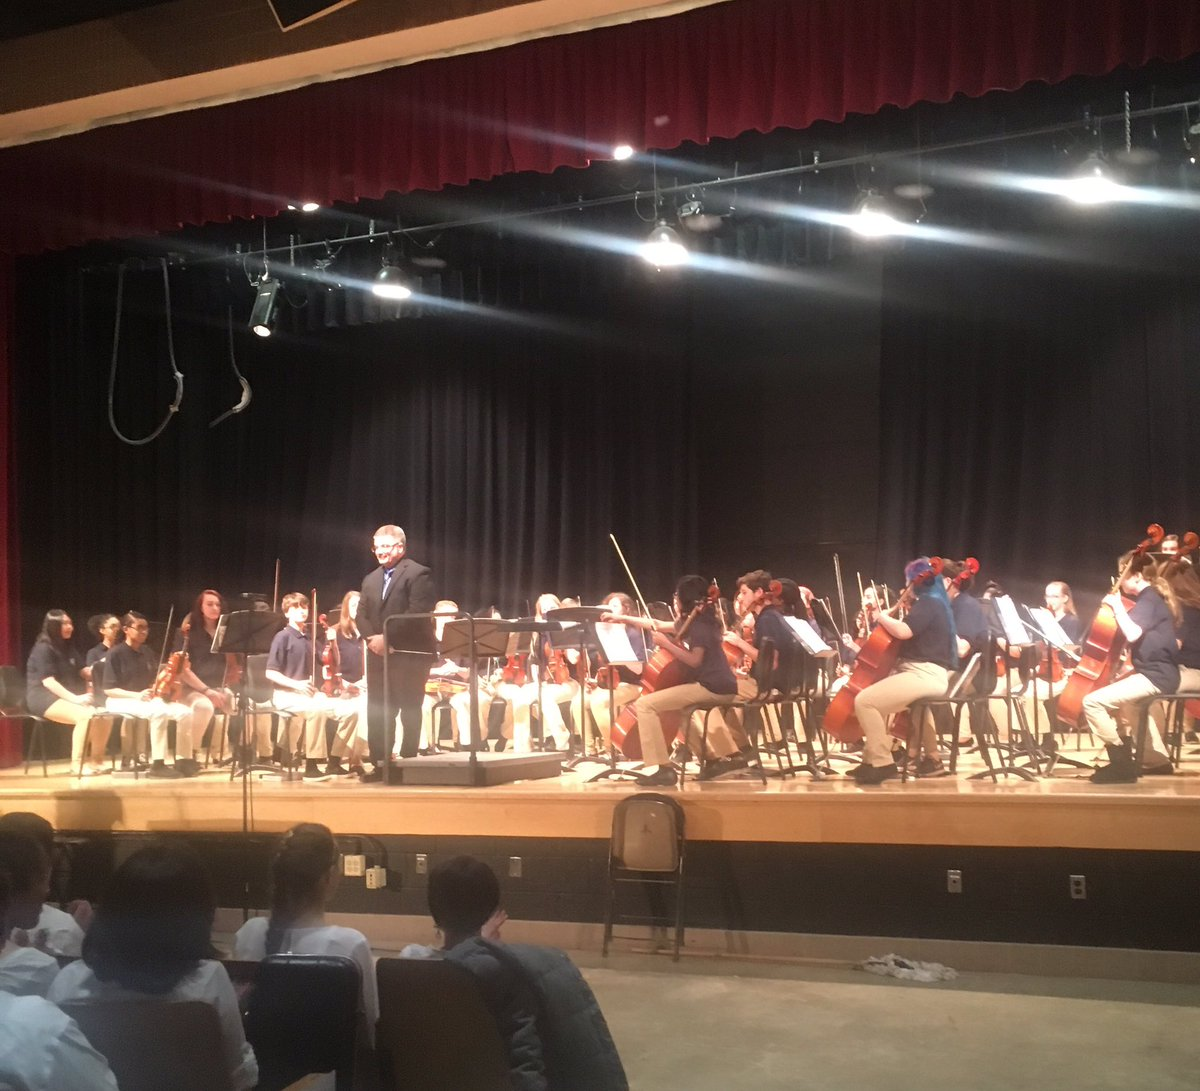 Franklin Middle Honors Orchestra at County Assessment today. #musiced #loveourkids #bcpsmakes<br>http://pic.twitter.com/QZ2EIzVdPc